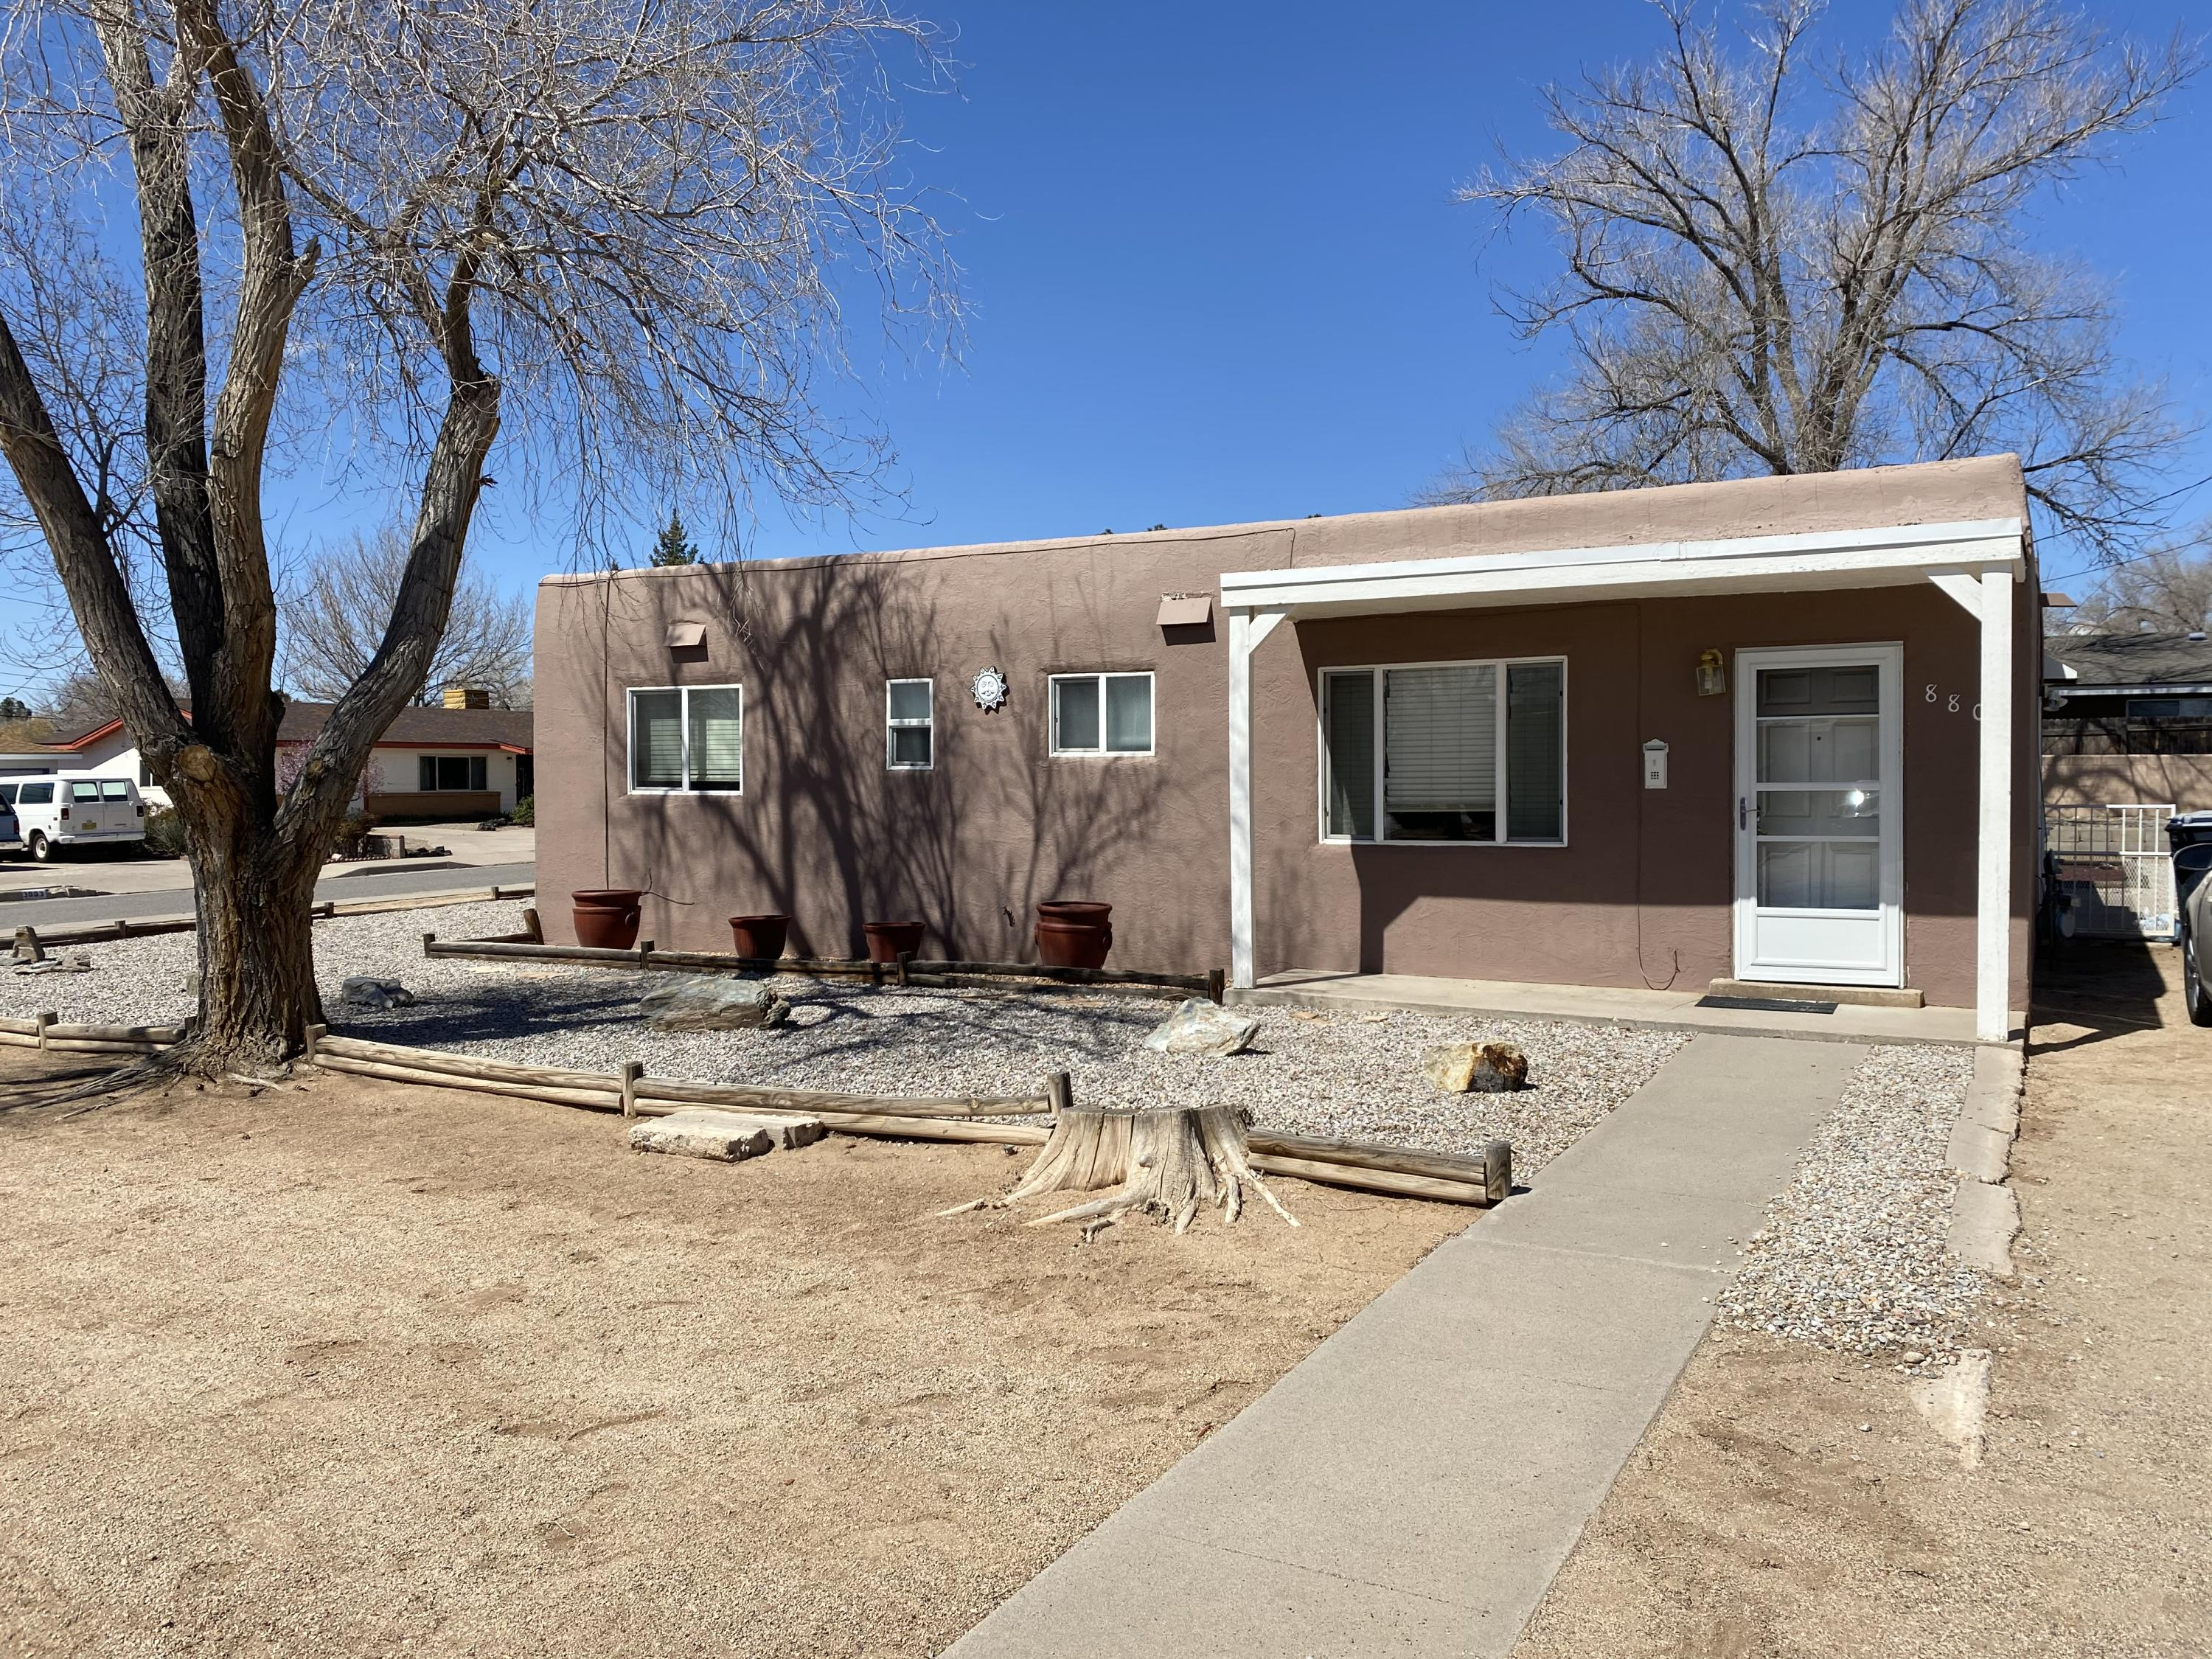 This 3 bedroom home has been meticulously upkept and is located on a huge corner lot in a great location.  It is located in the Sandia High School district and is walking distance to the elementary school - a definite must see!